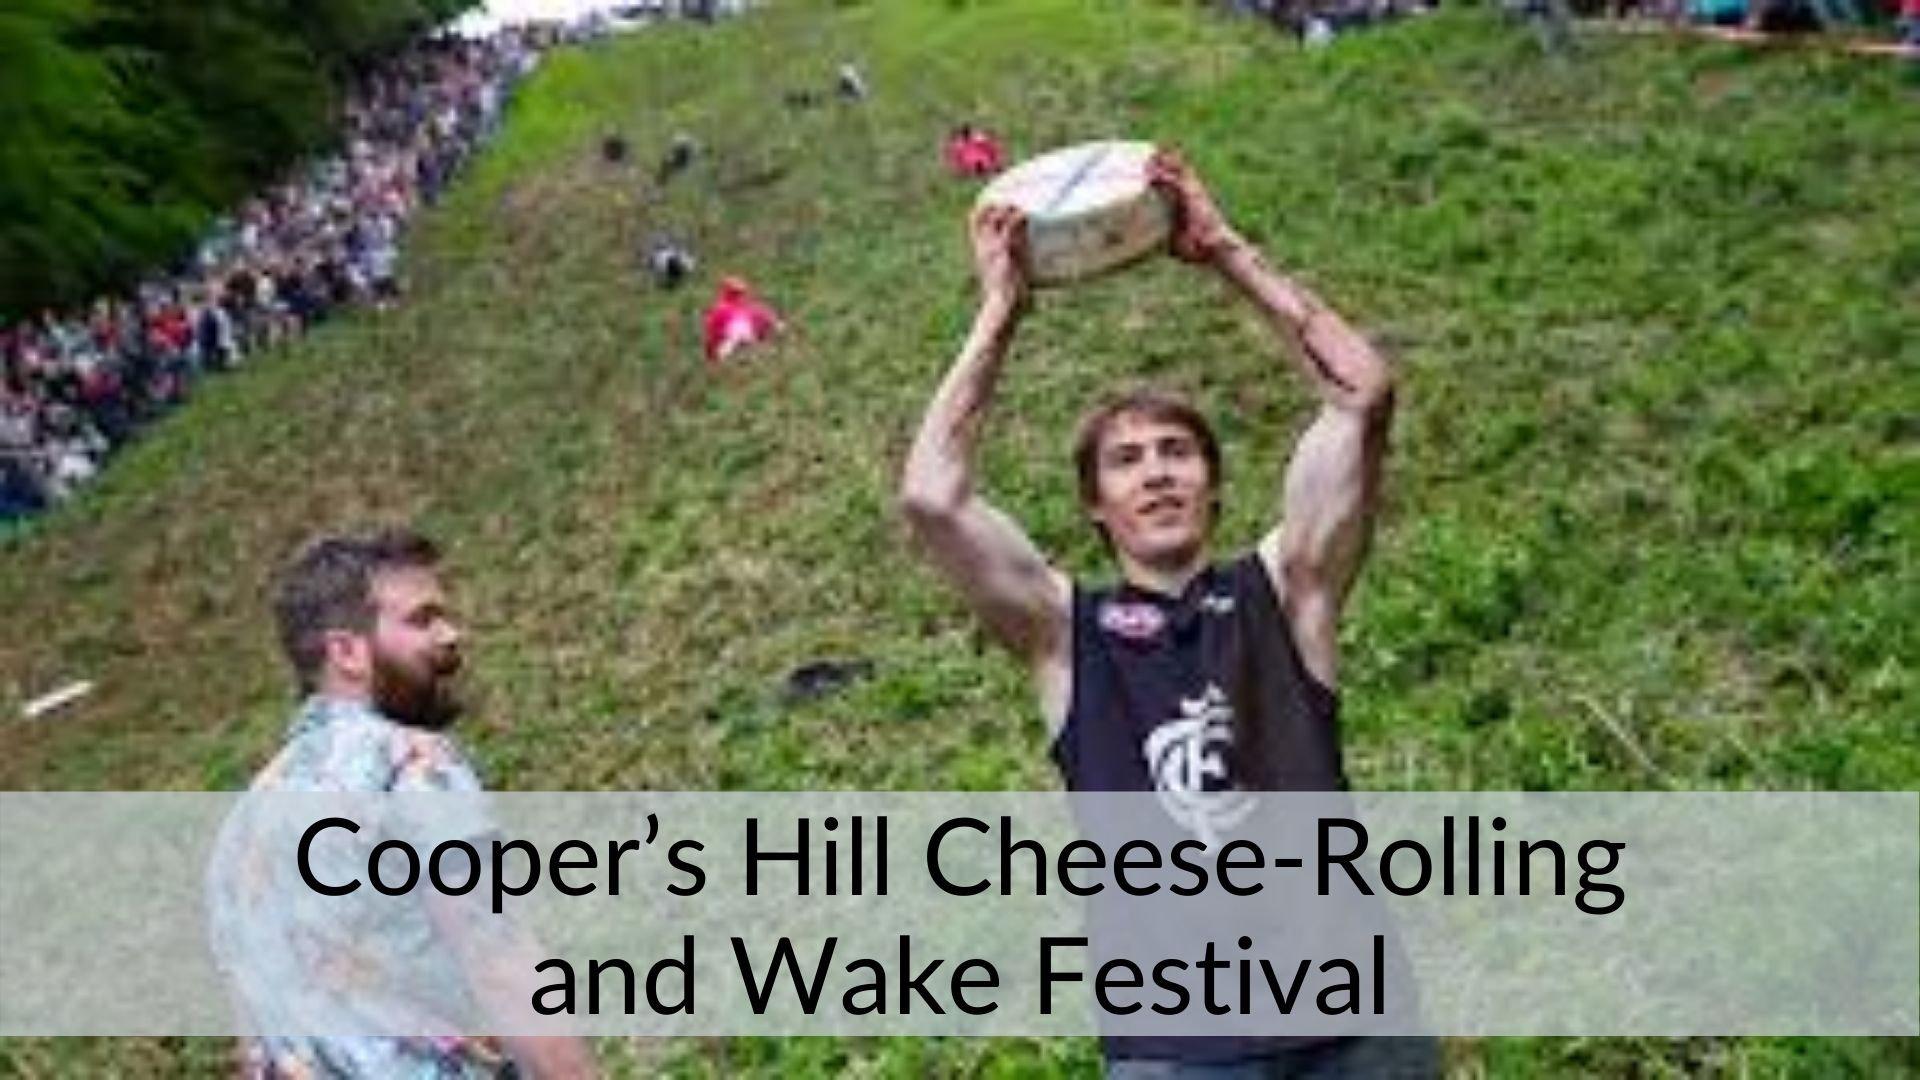 Cooper's Hill Cheese-Rolling and Wake Festival